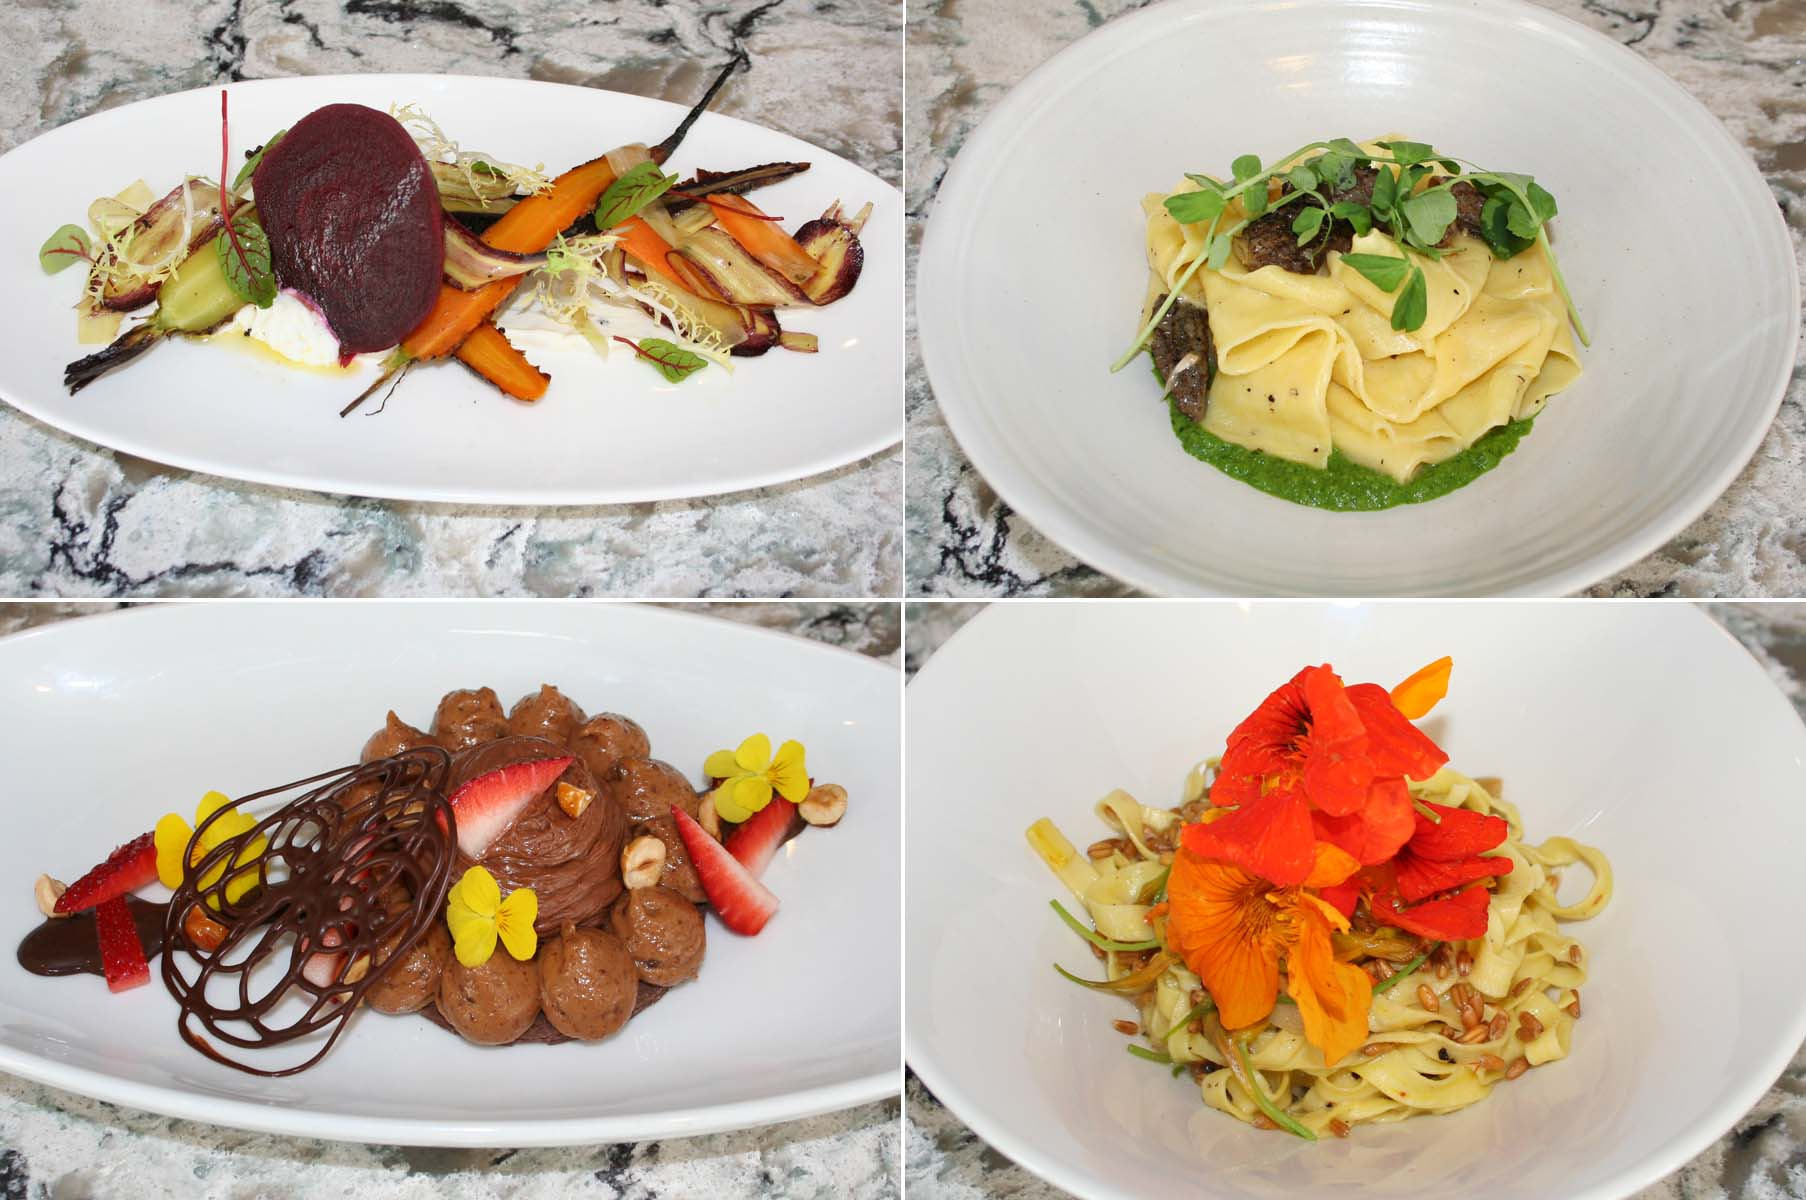 Centrolina's opening menu includes a salad of roasted beets and carrots (clockwise from top left), pappardelle with morels and asparagus, chitarra pasta with wheat berries and nasturium, and chocolate mousse with hazelnut cremeaux and caramelized Piedmont hazelnuts. (Photos: Mark Heckathorn/DC on Heels)